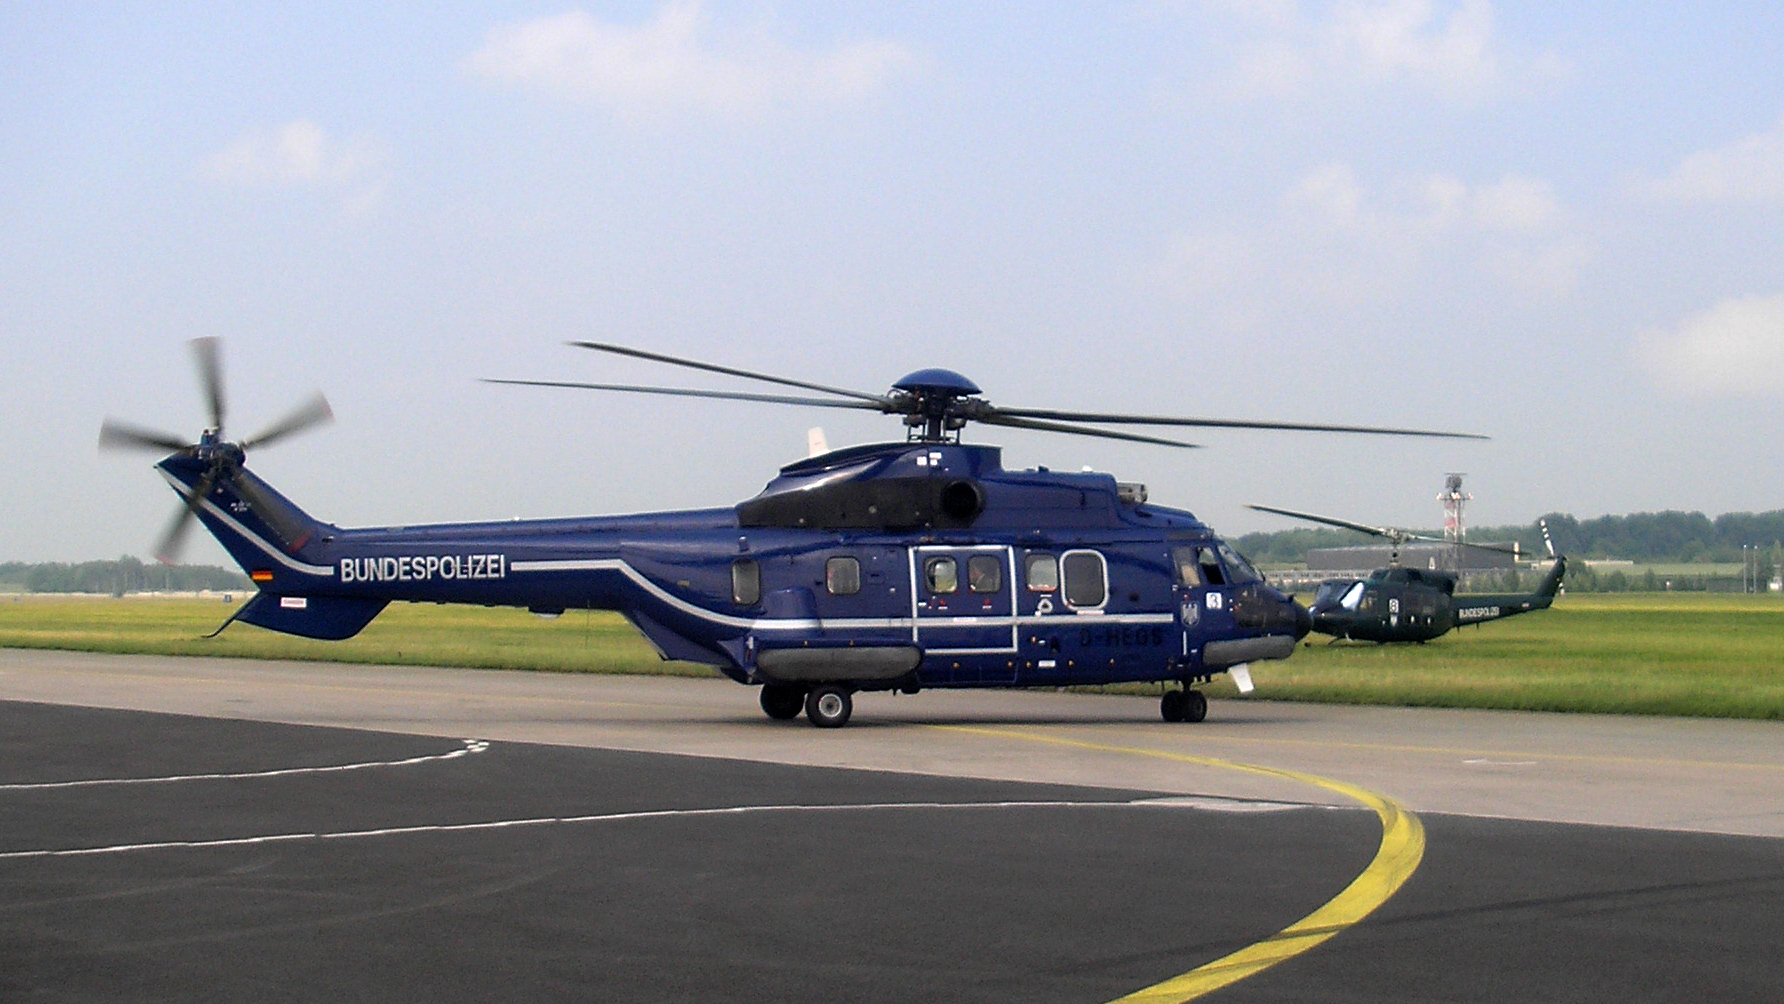 helicopter information with File Bundespolizei Helikopter Rostock 2007 on National Arts Marketing Development Ticketing Conference Special Offer Today as well gallatinrappelcrew further Monte Carlo together with Police Transporter likewise 642915.